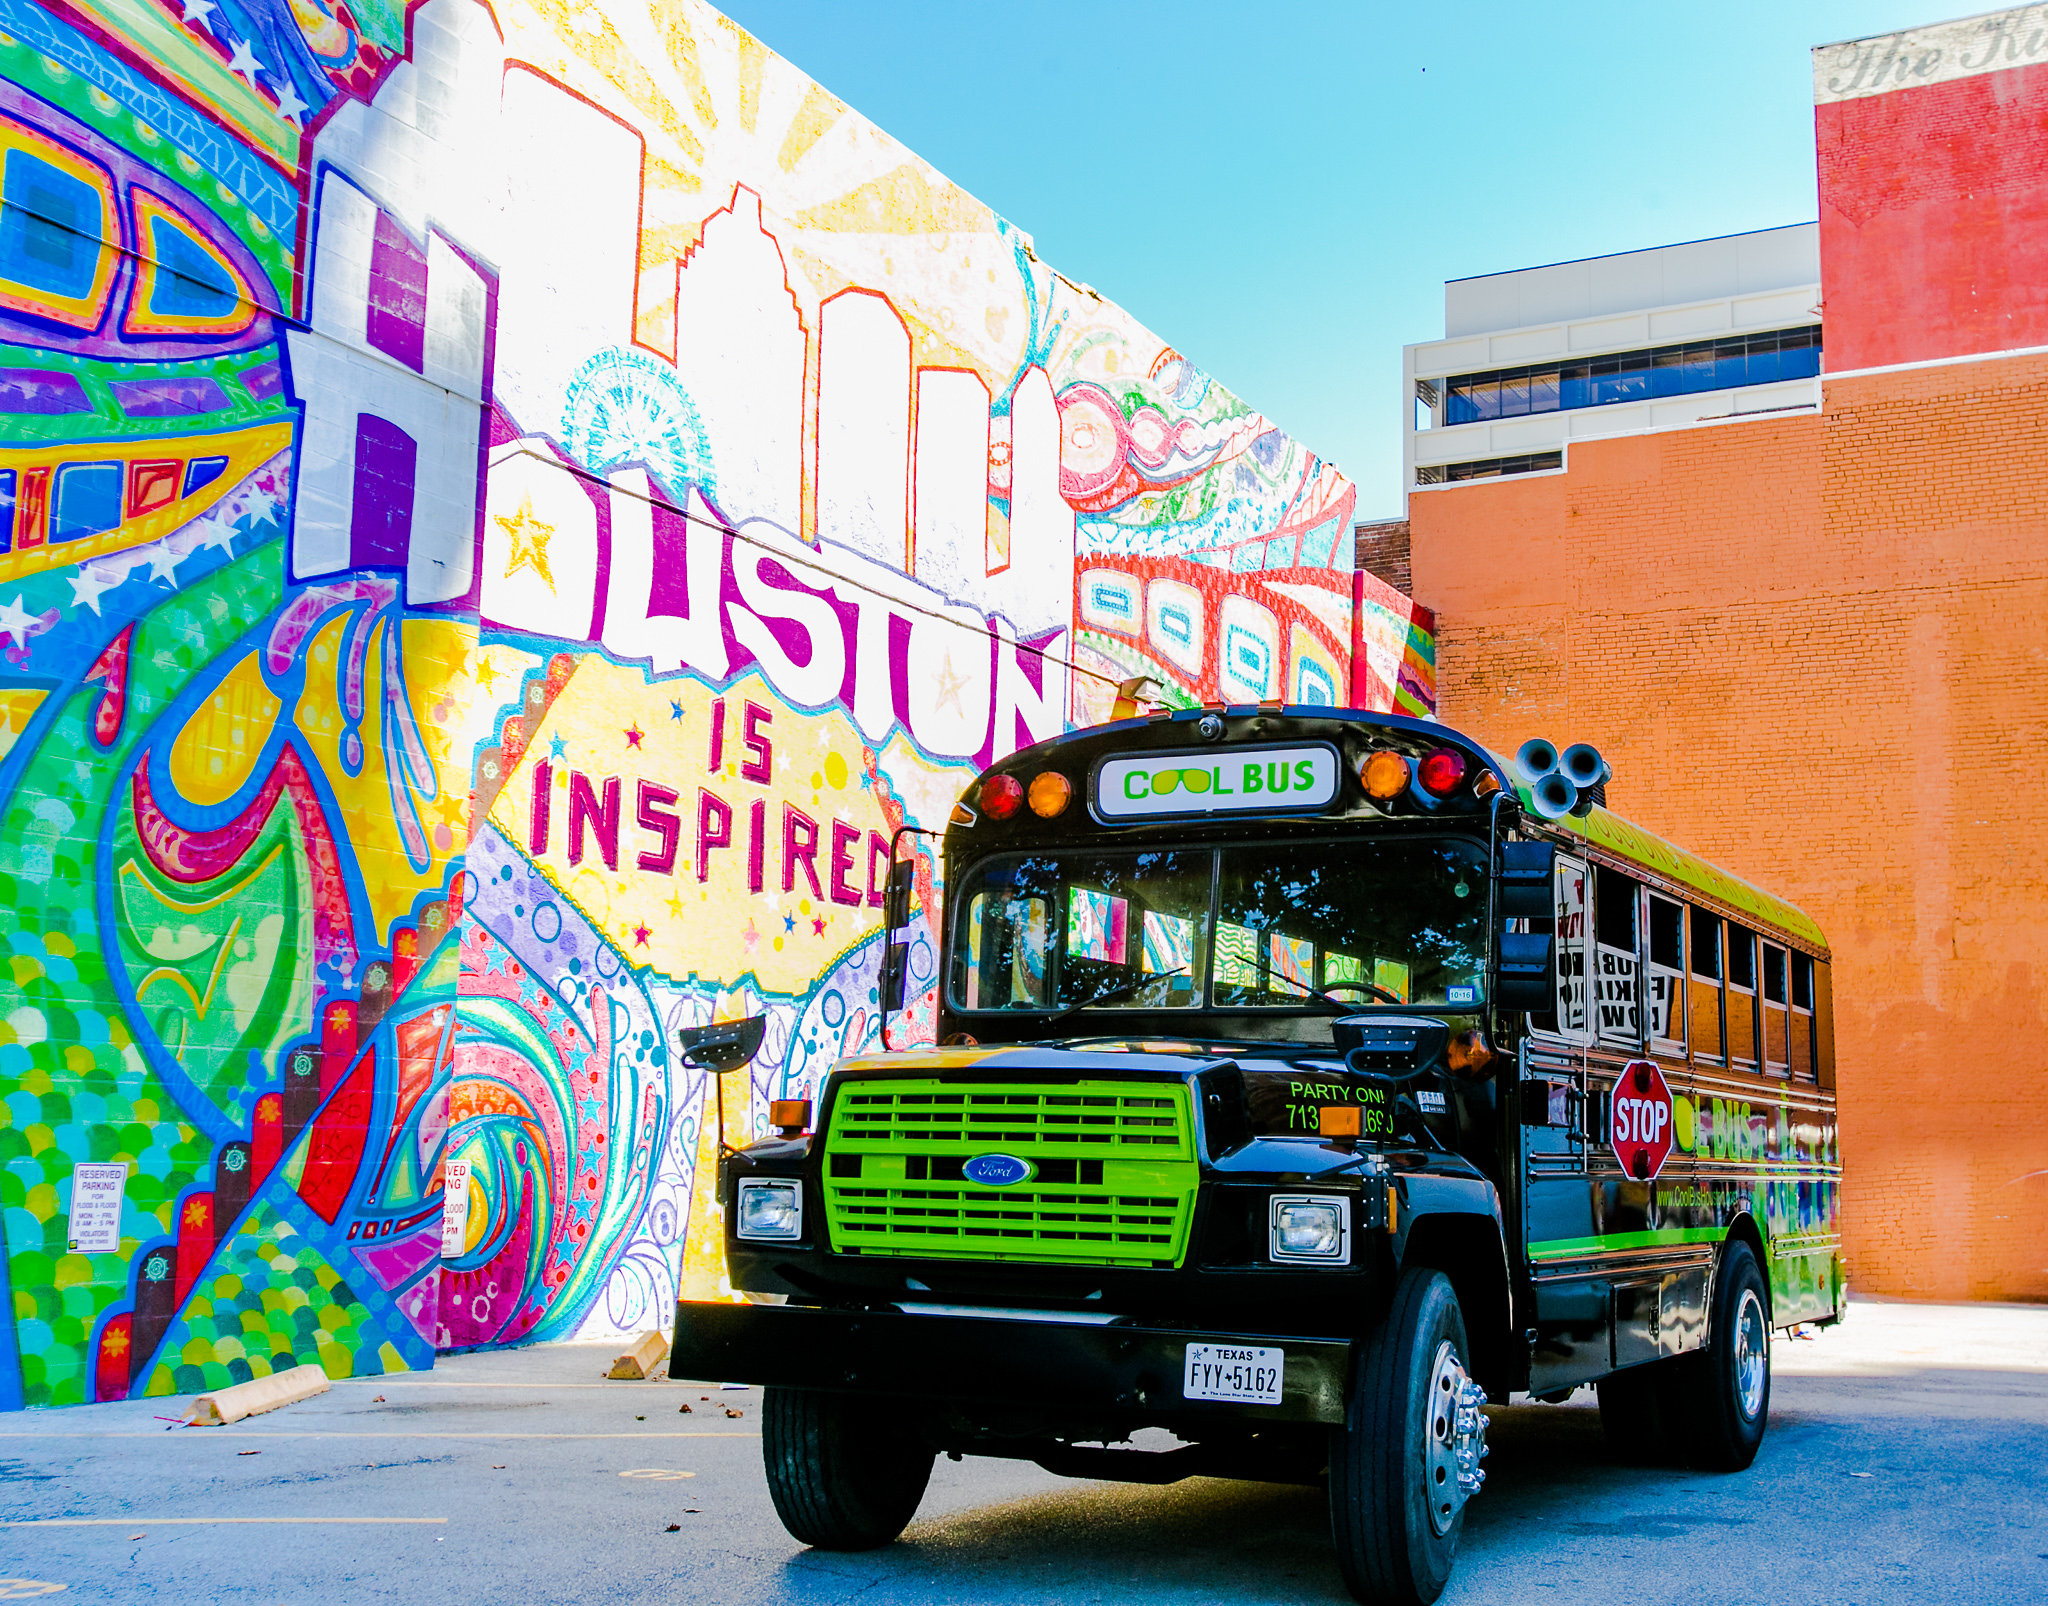 Cool Bus Houston at Houston Art